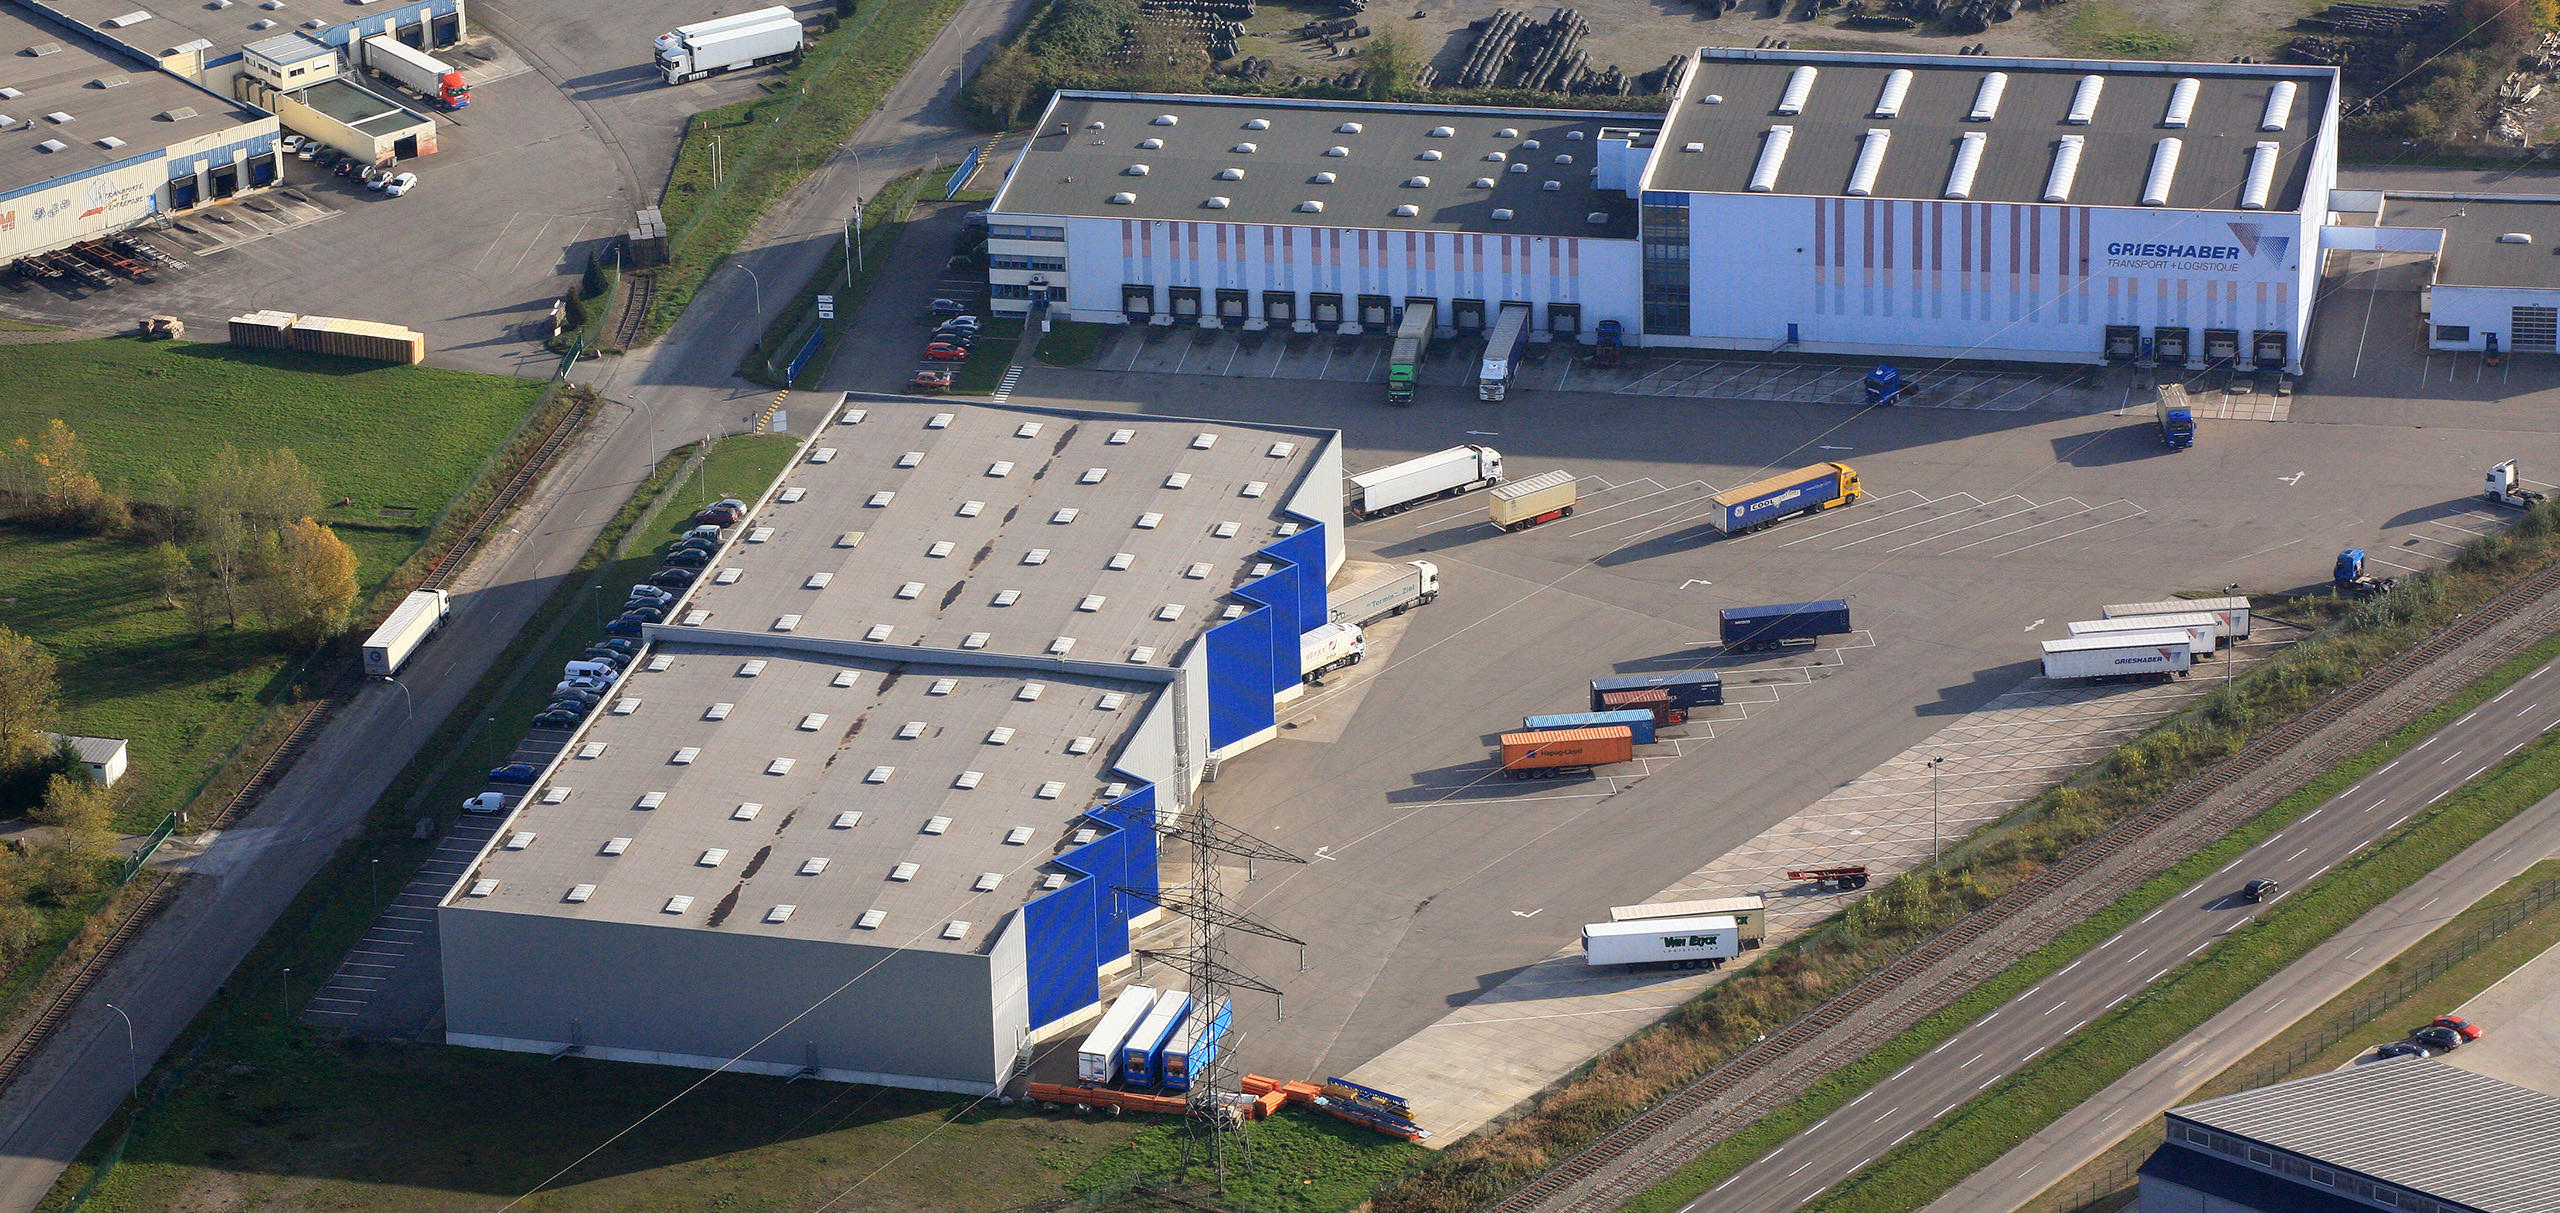 Liegenschaft der Grieshaber Logistics Group in Hombourg